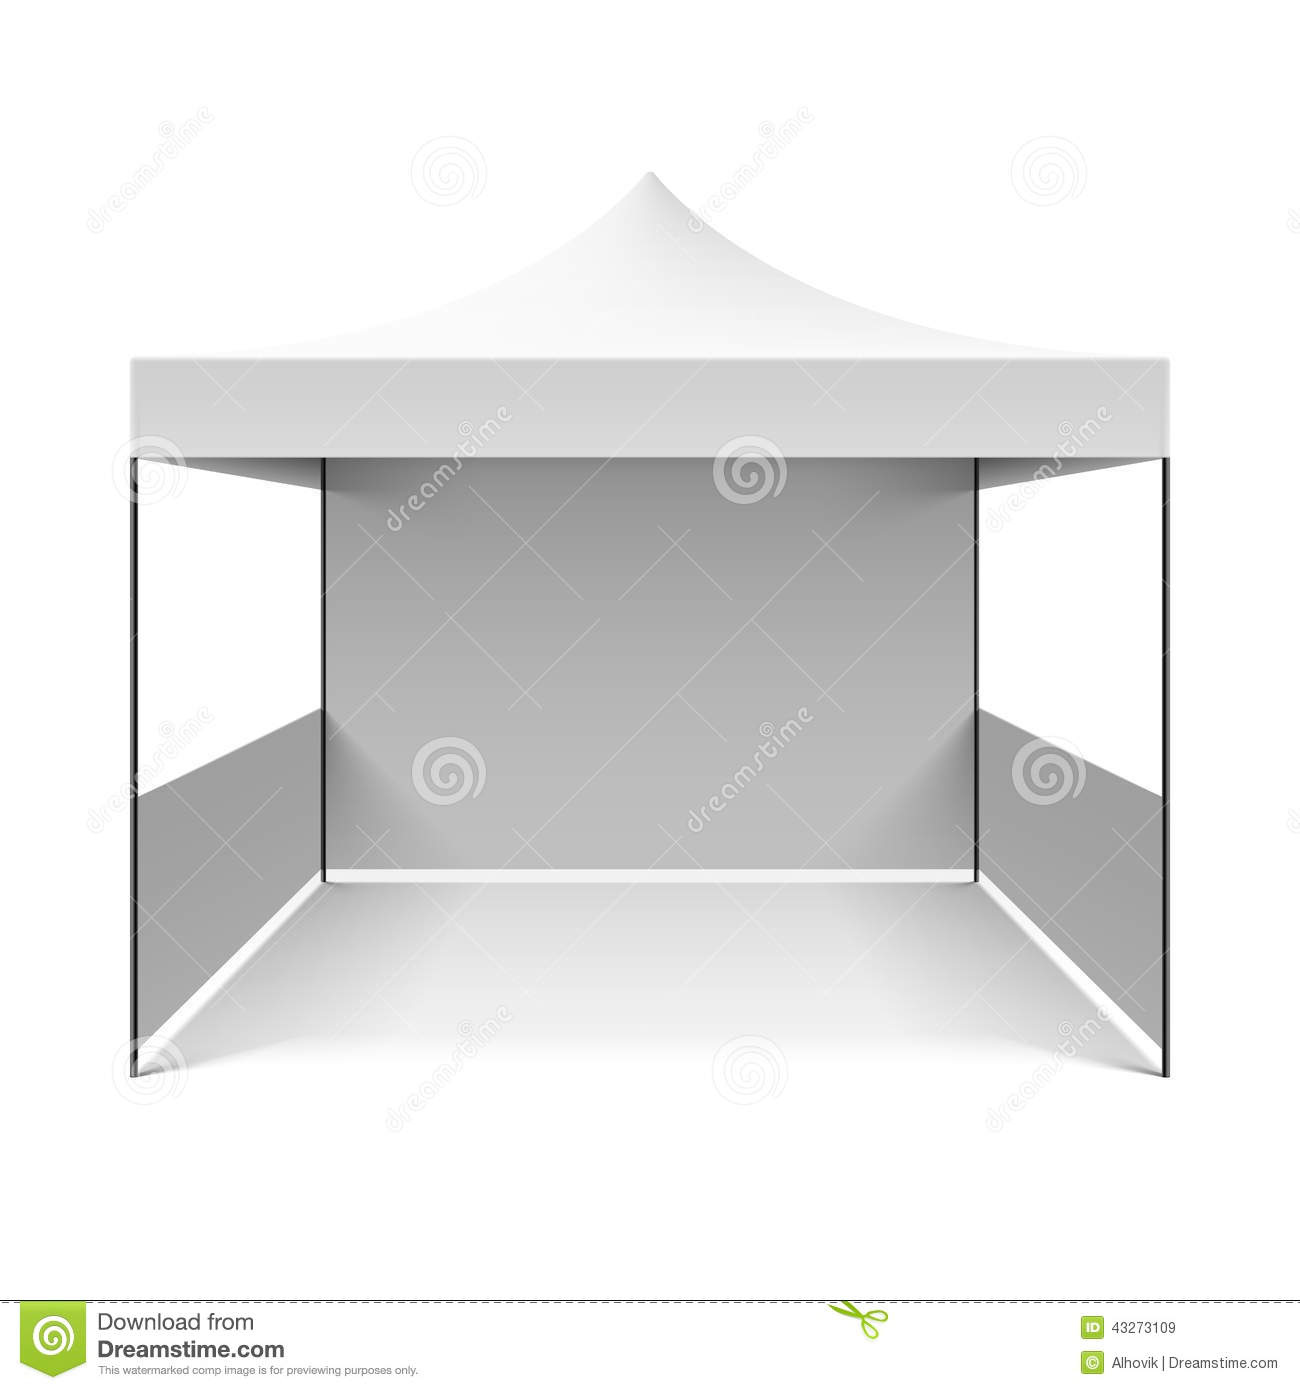 White folding tent  sc 1 st  Dreamstime.com & White folding tent stock vector. Illustration of camp - 43273109